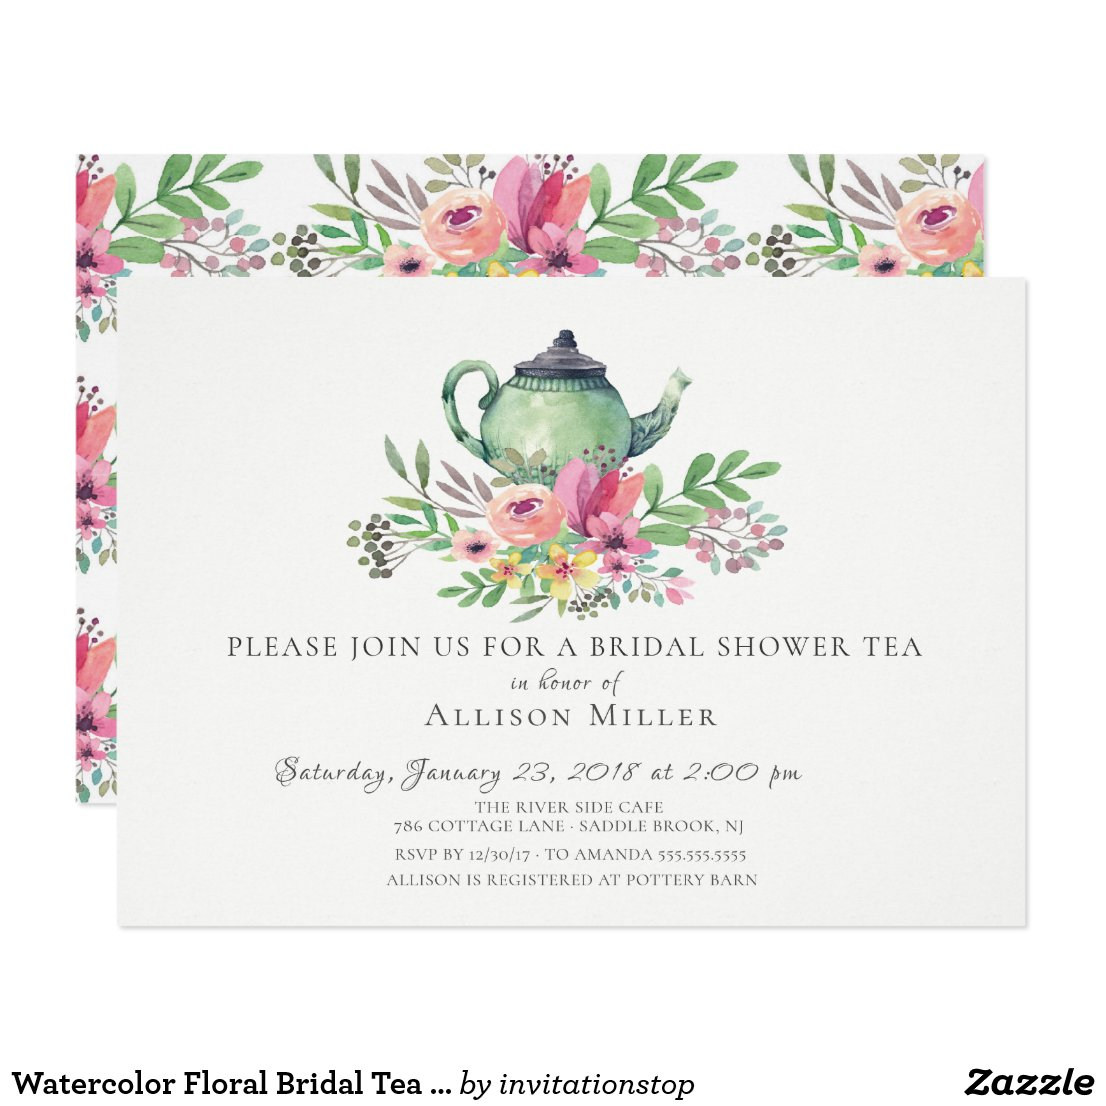 Watercolor Floral Bridal Tea Party Invitation